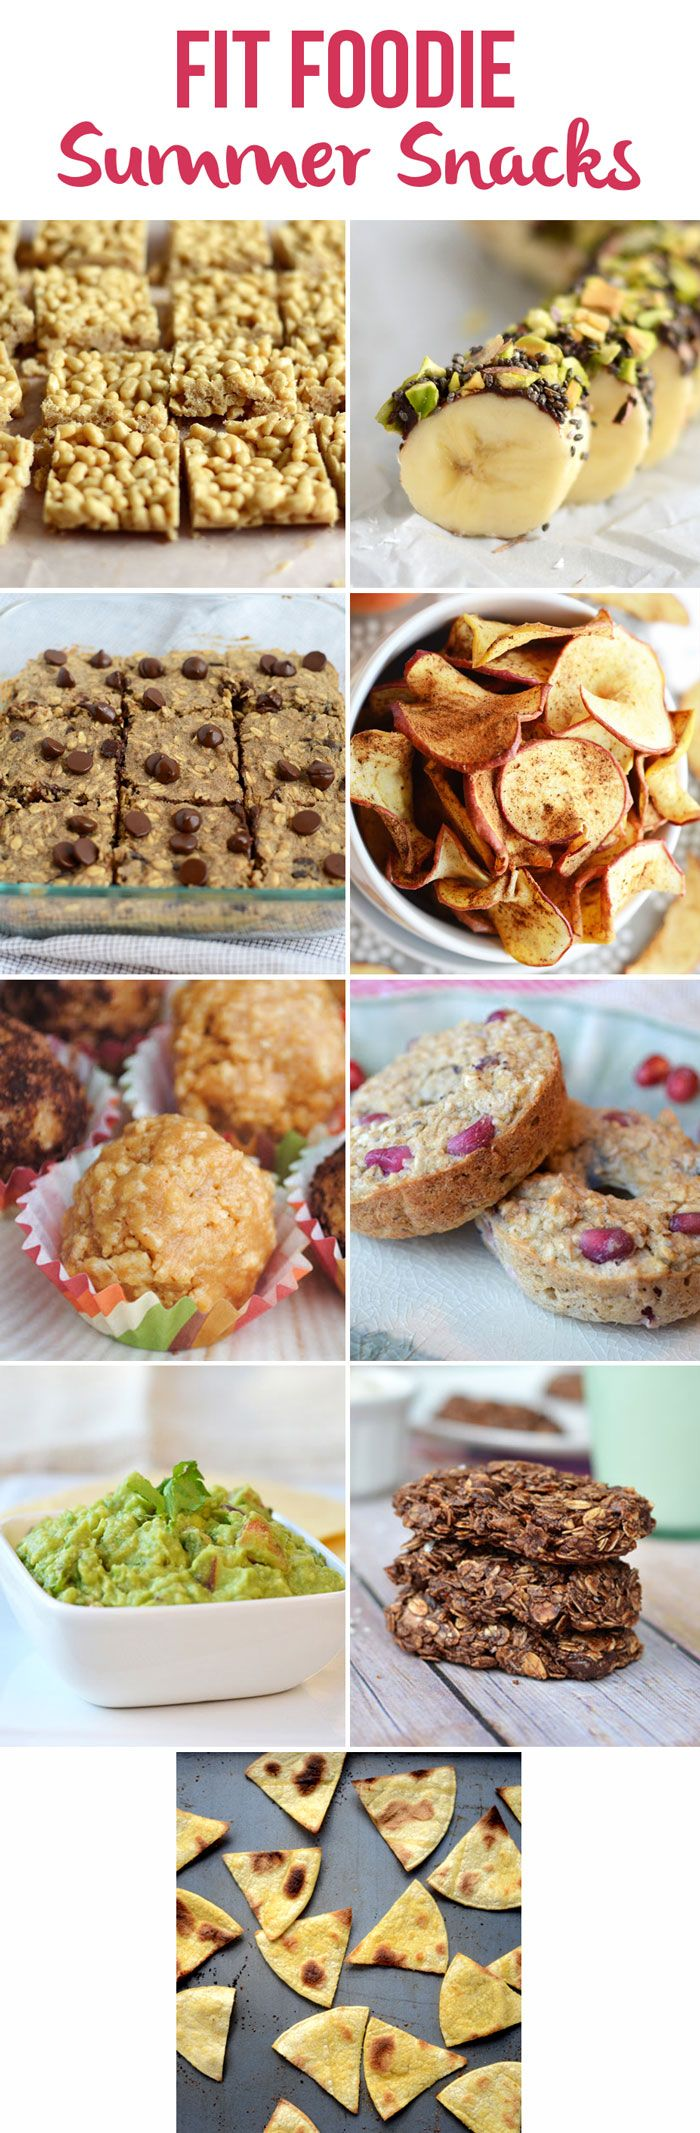 Fit Foodie Summer Snacks + 33 other Healthy Summertime Recipes! via FitFoodieFinds.com